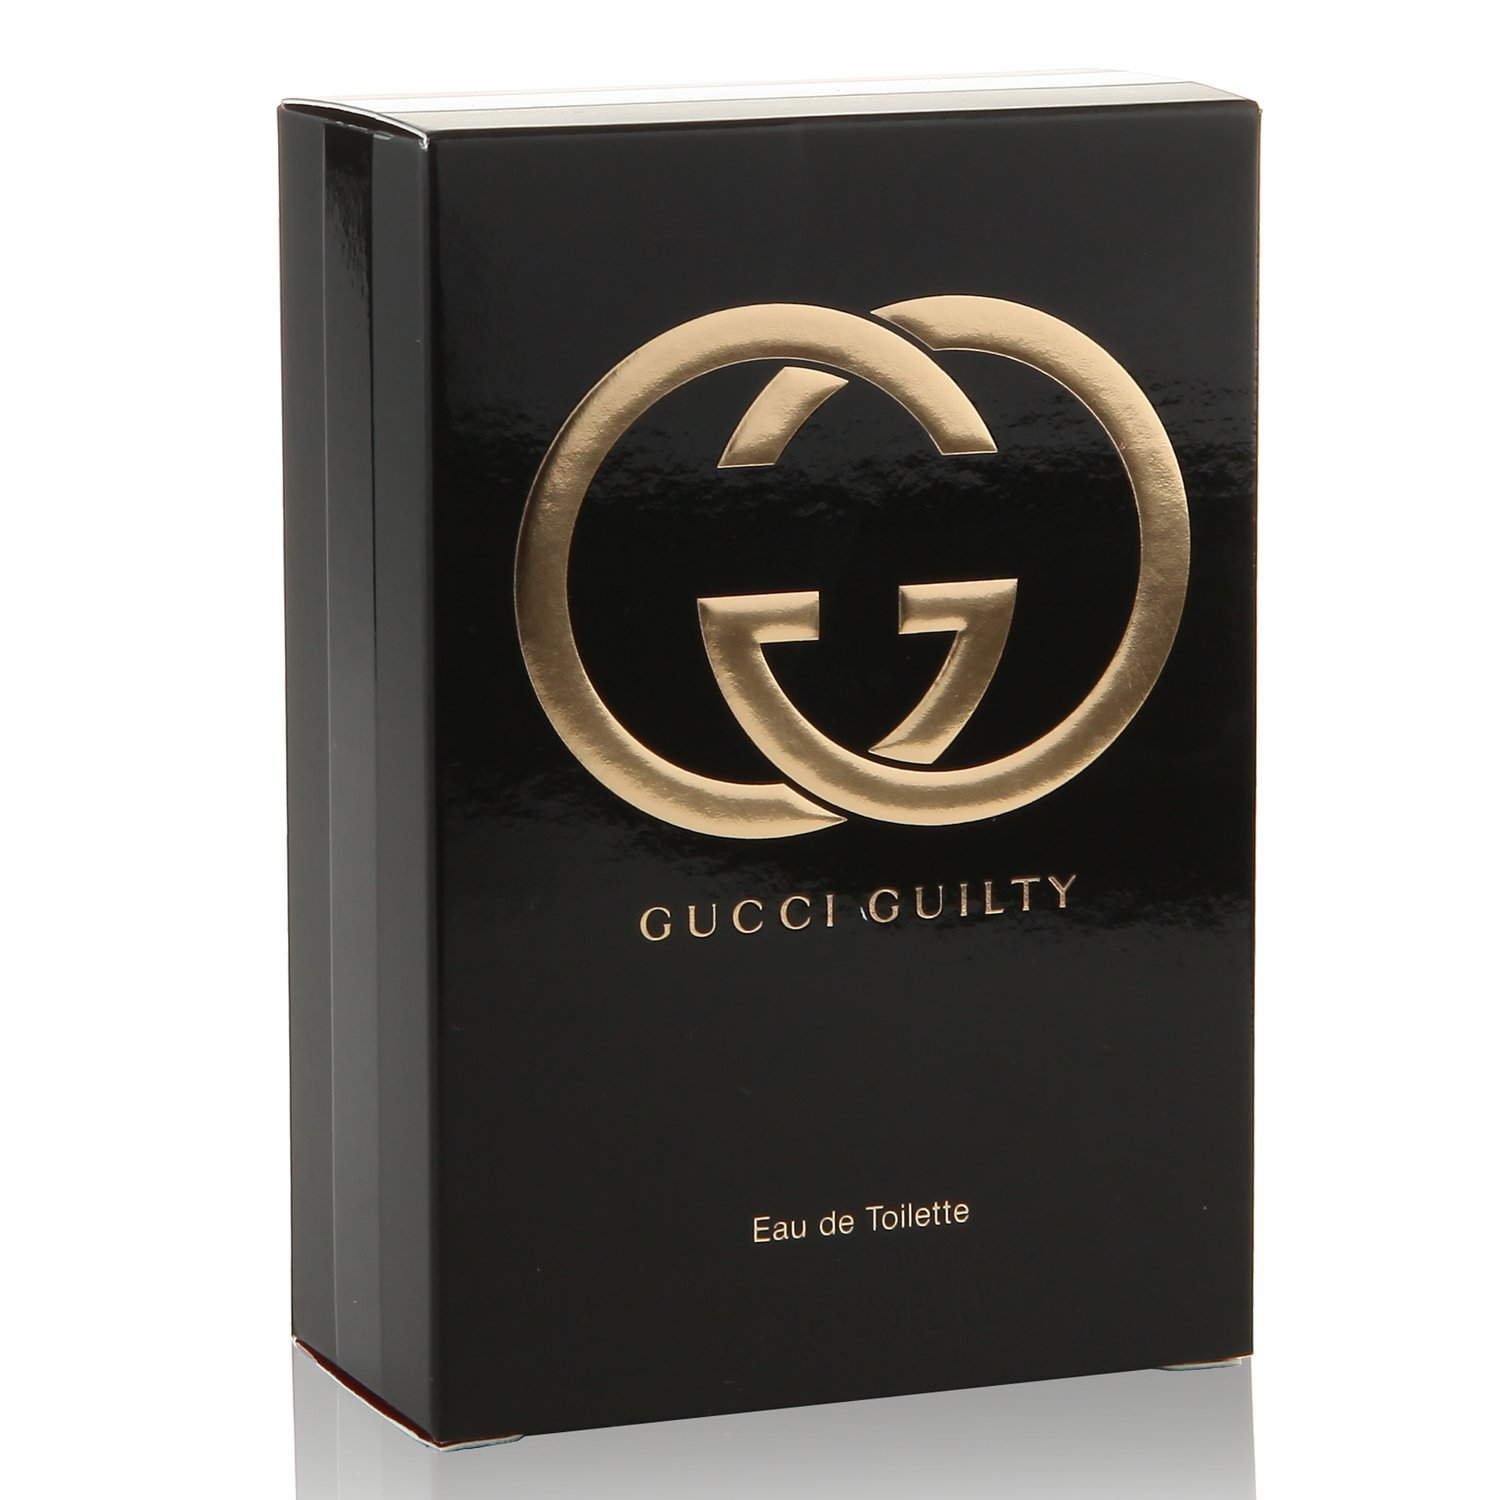 Nuoc hoa Guilty Gucci Eau de Toilette Spray for women 25 oz